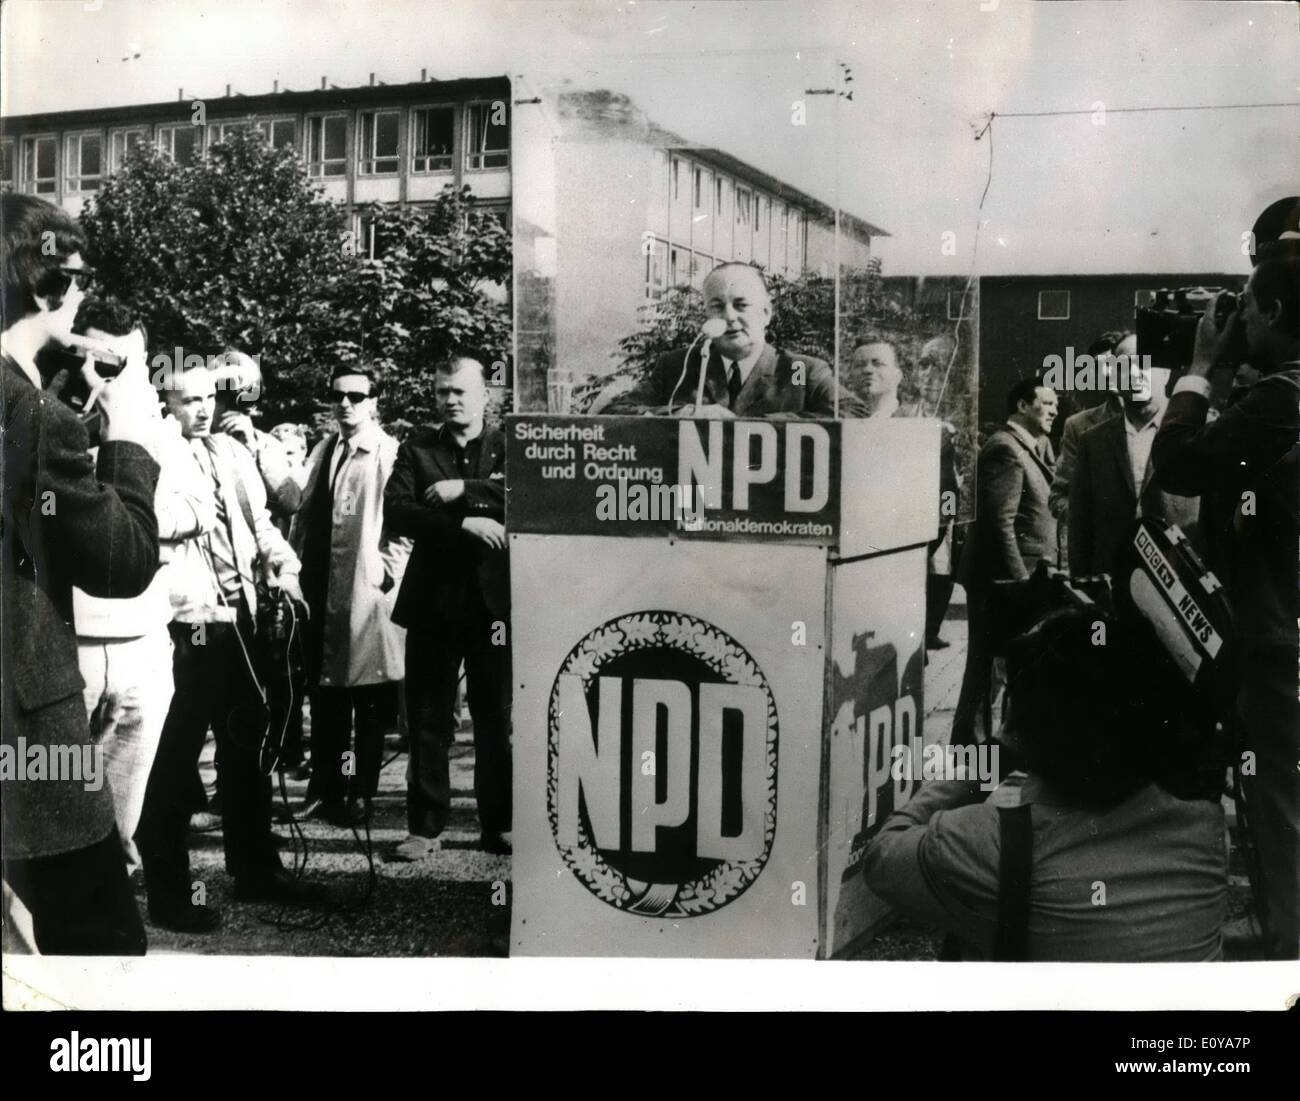 Sep. 09, 1969 - Final Week Of German Election Campaigns: More than 38 million West German will go to the pols in next Sunday's General Election. Photo shows During an NPD election rallly in Easen, ADOLF von THADDEN, chairman of the National Democratic Party) protested himself and his restrum by enclosing himself in plexi-glass. - Stock Image